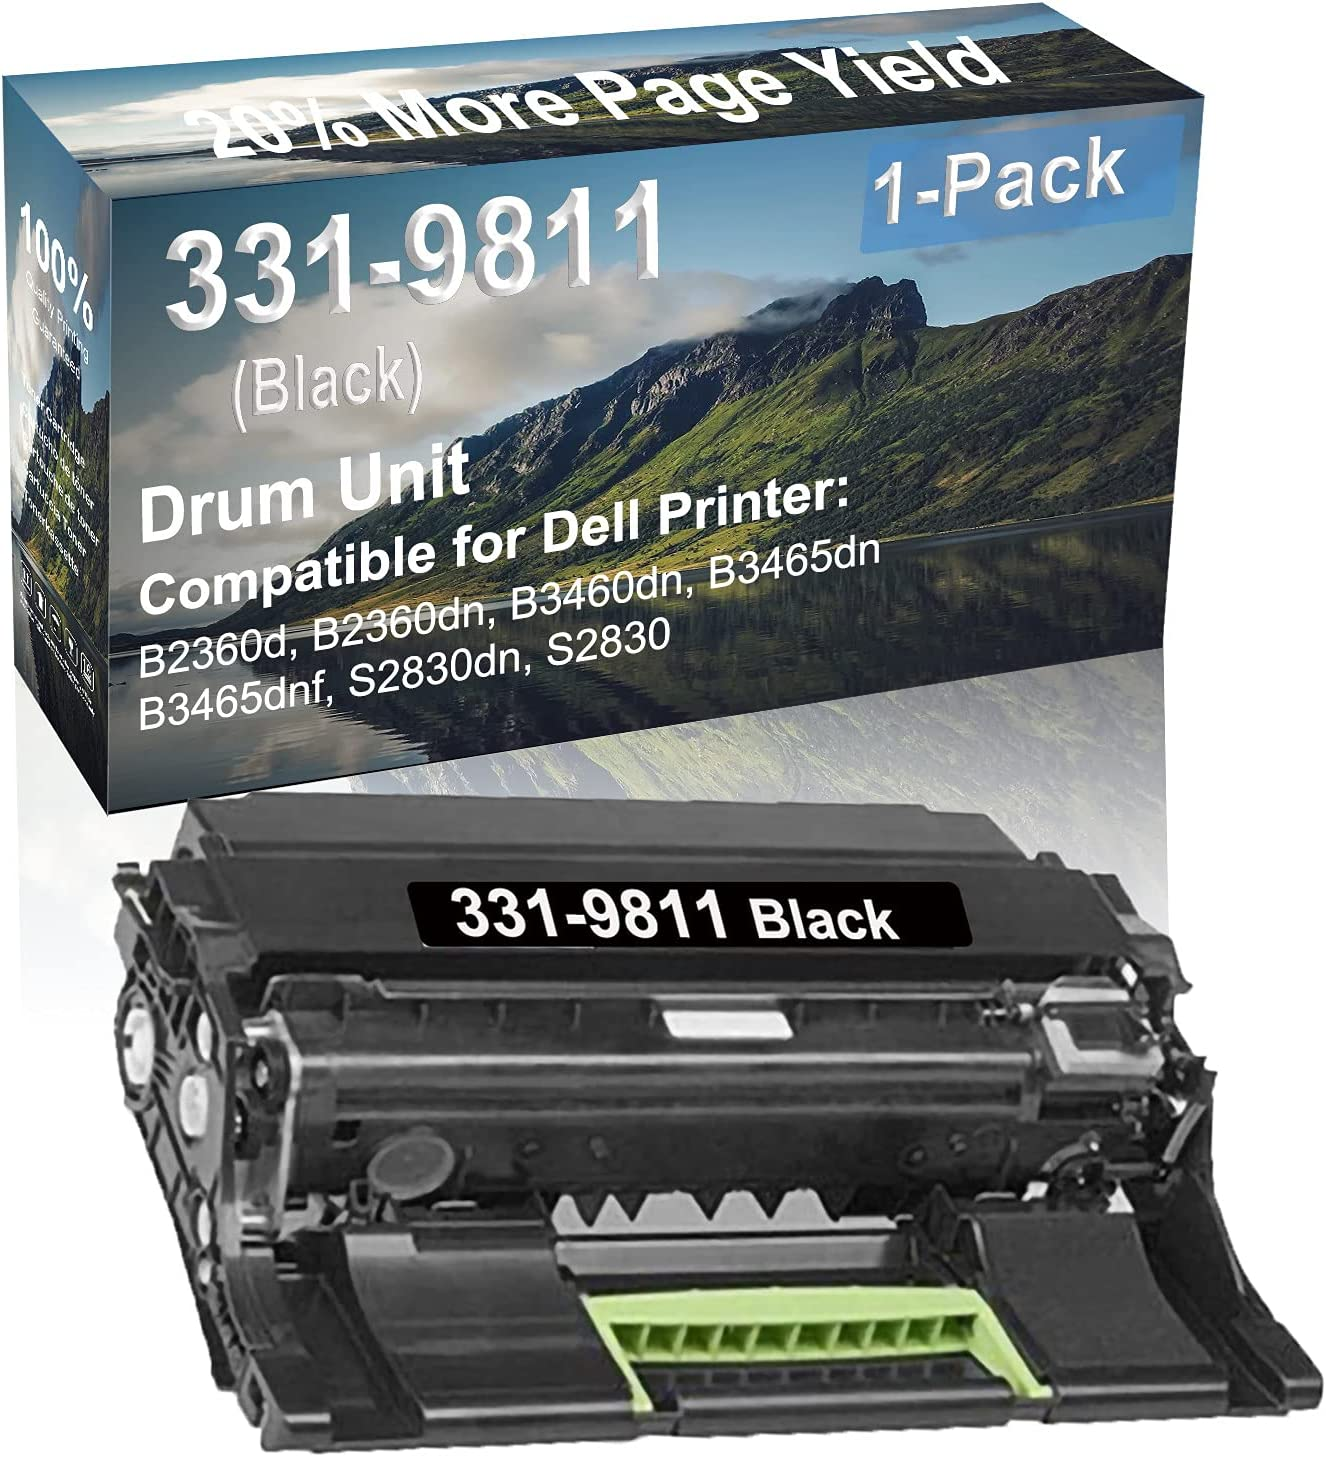 1-Pack Compatible Drum Unit (Black) Replacement for Dell 331-9811 Drum Kit use for Dell B3465dnf, S2830dn, S2830 Printer